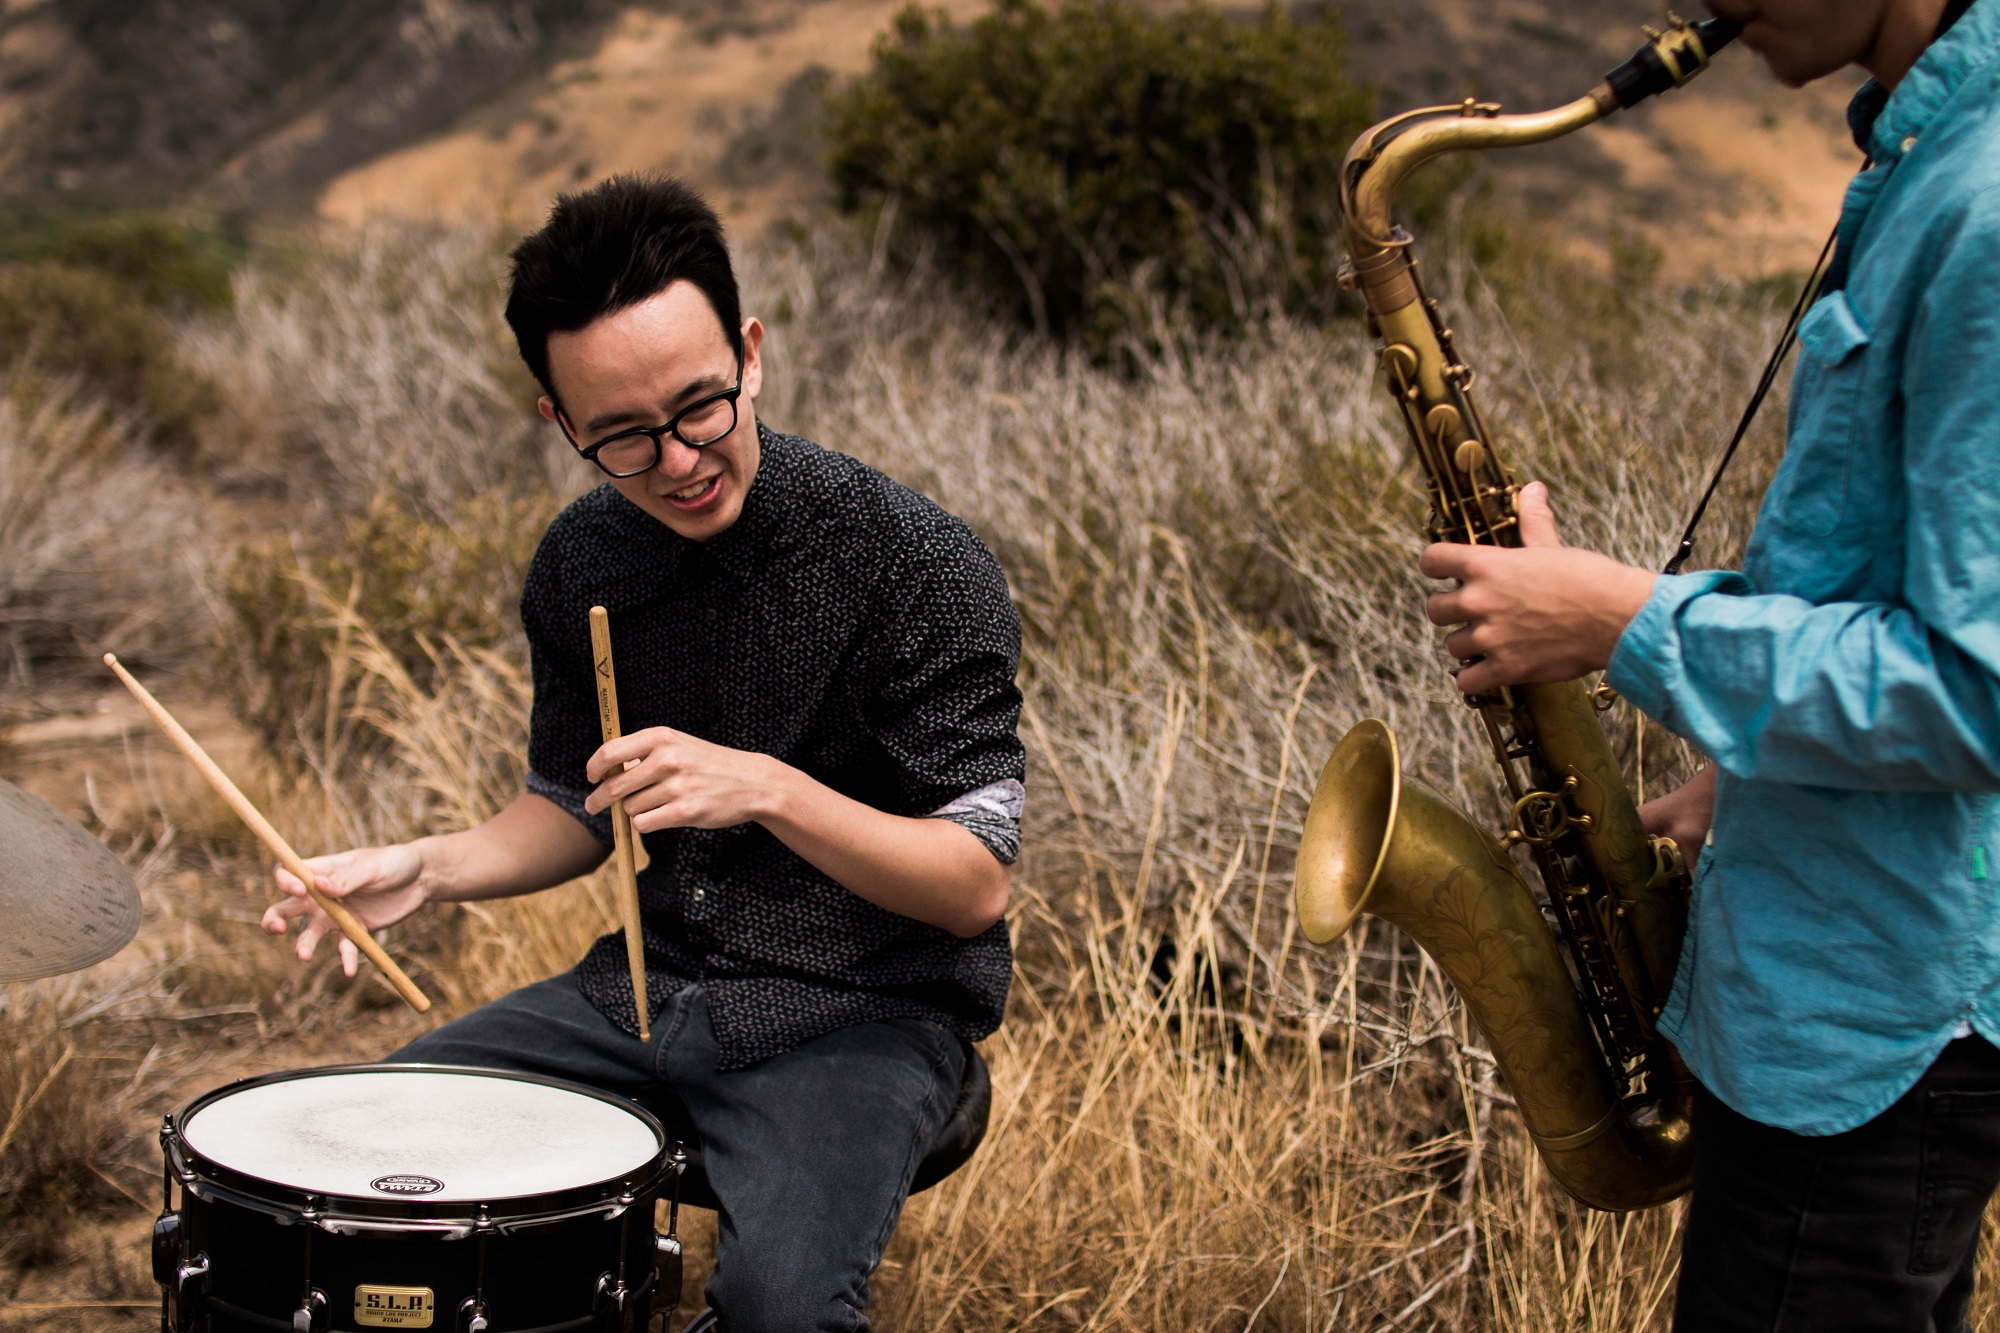 Photo of men playing drum and sax in a field by Cole Hutson